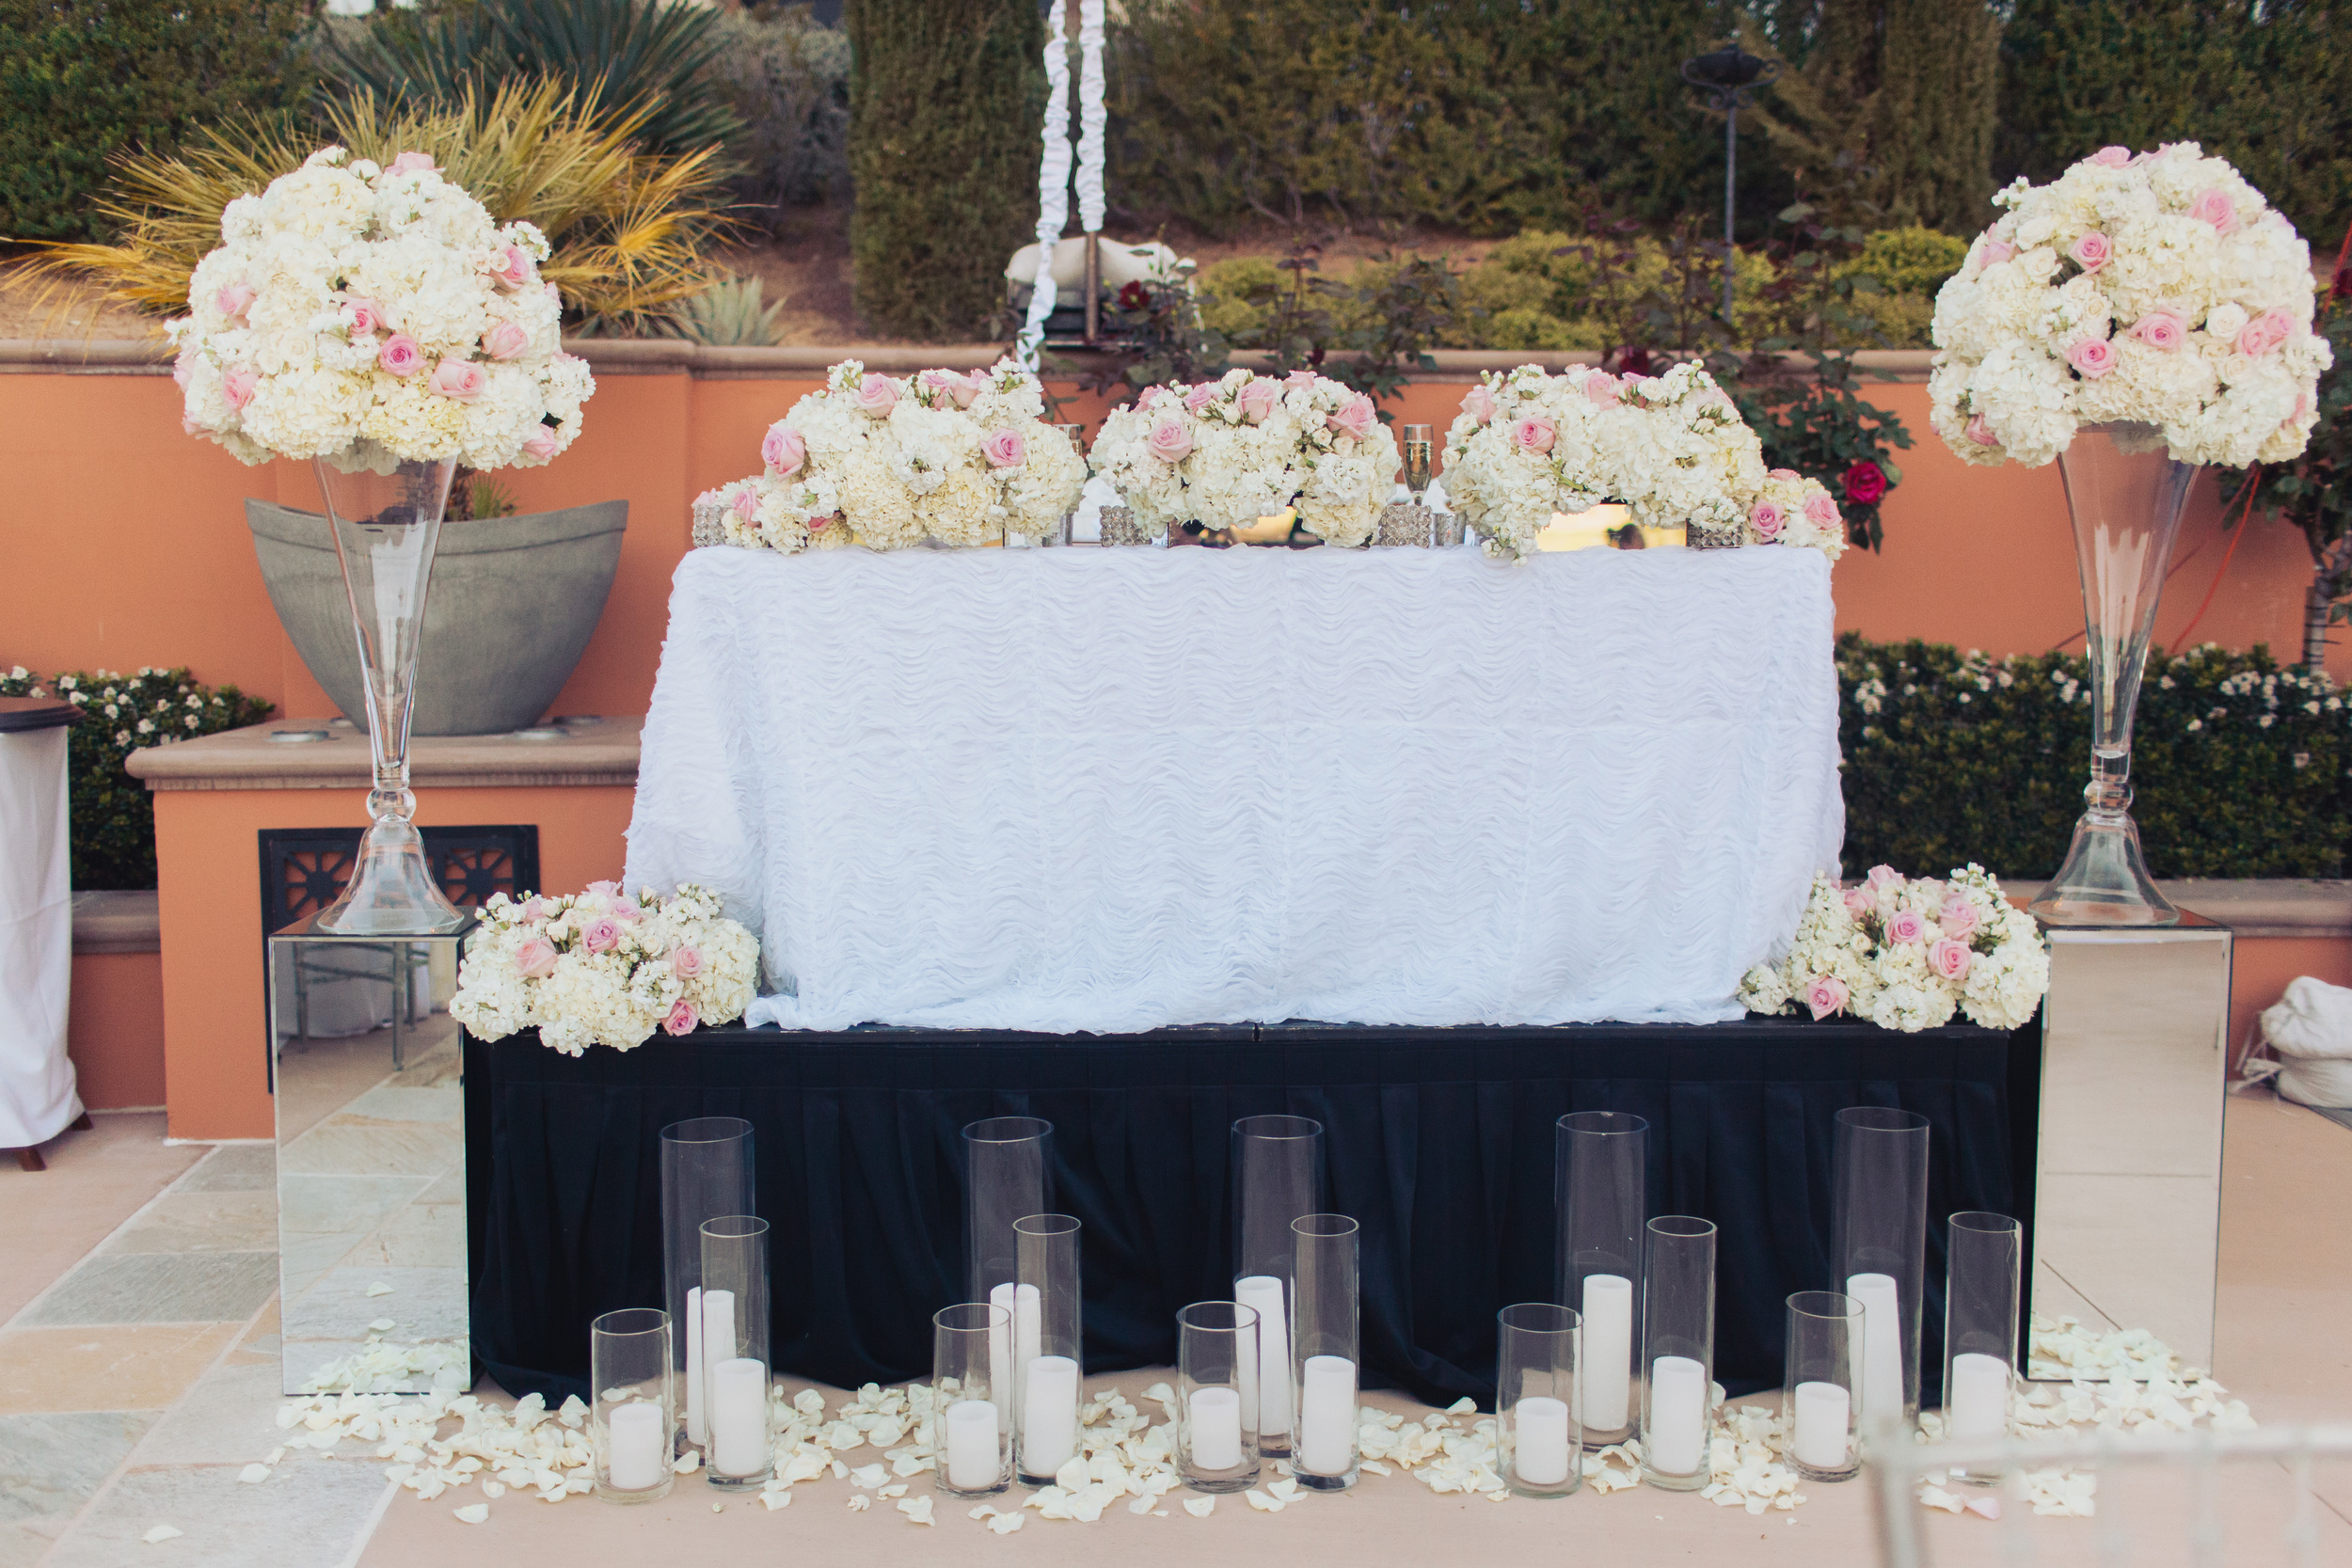 The bride and groom sat at an elevated sweetheart table dressed in a textured white linen, surrounded by lush, full floral arrangements and candles.    Las Vegas Wedding Planner Andrea Eppolito   Wedding at Lake Las Vegas   White and Blu  sh and Grey Wedding   Luxury Wedding Las Vegas